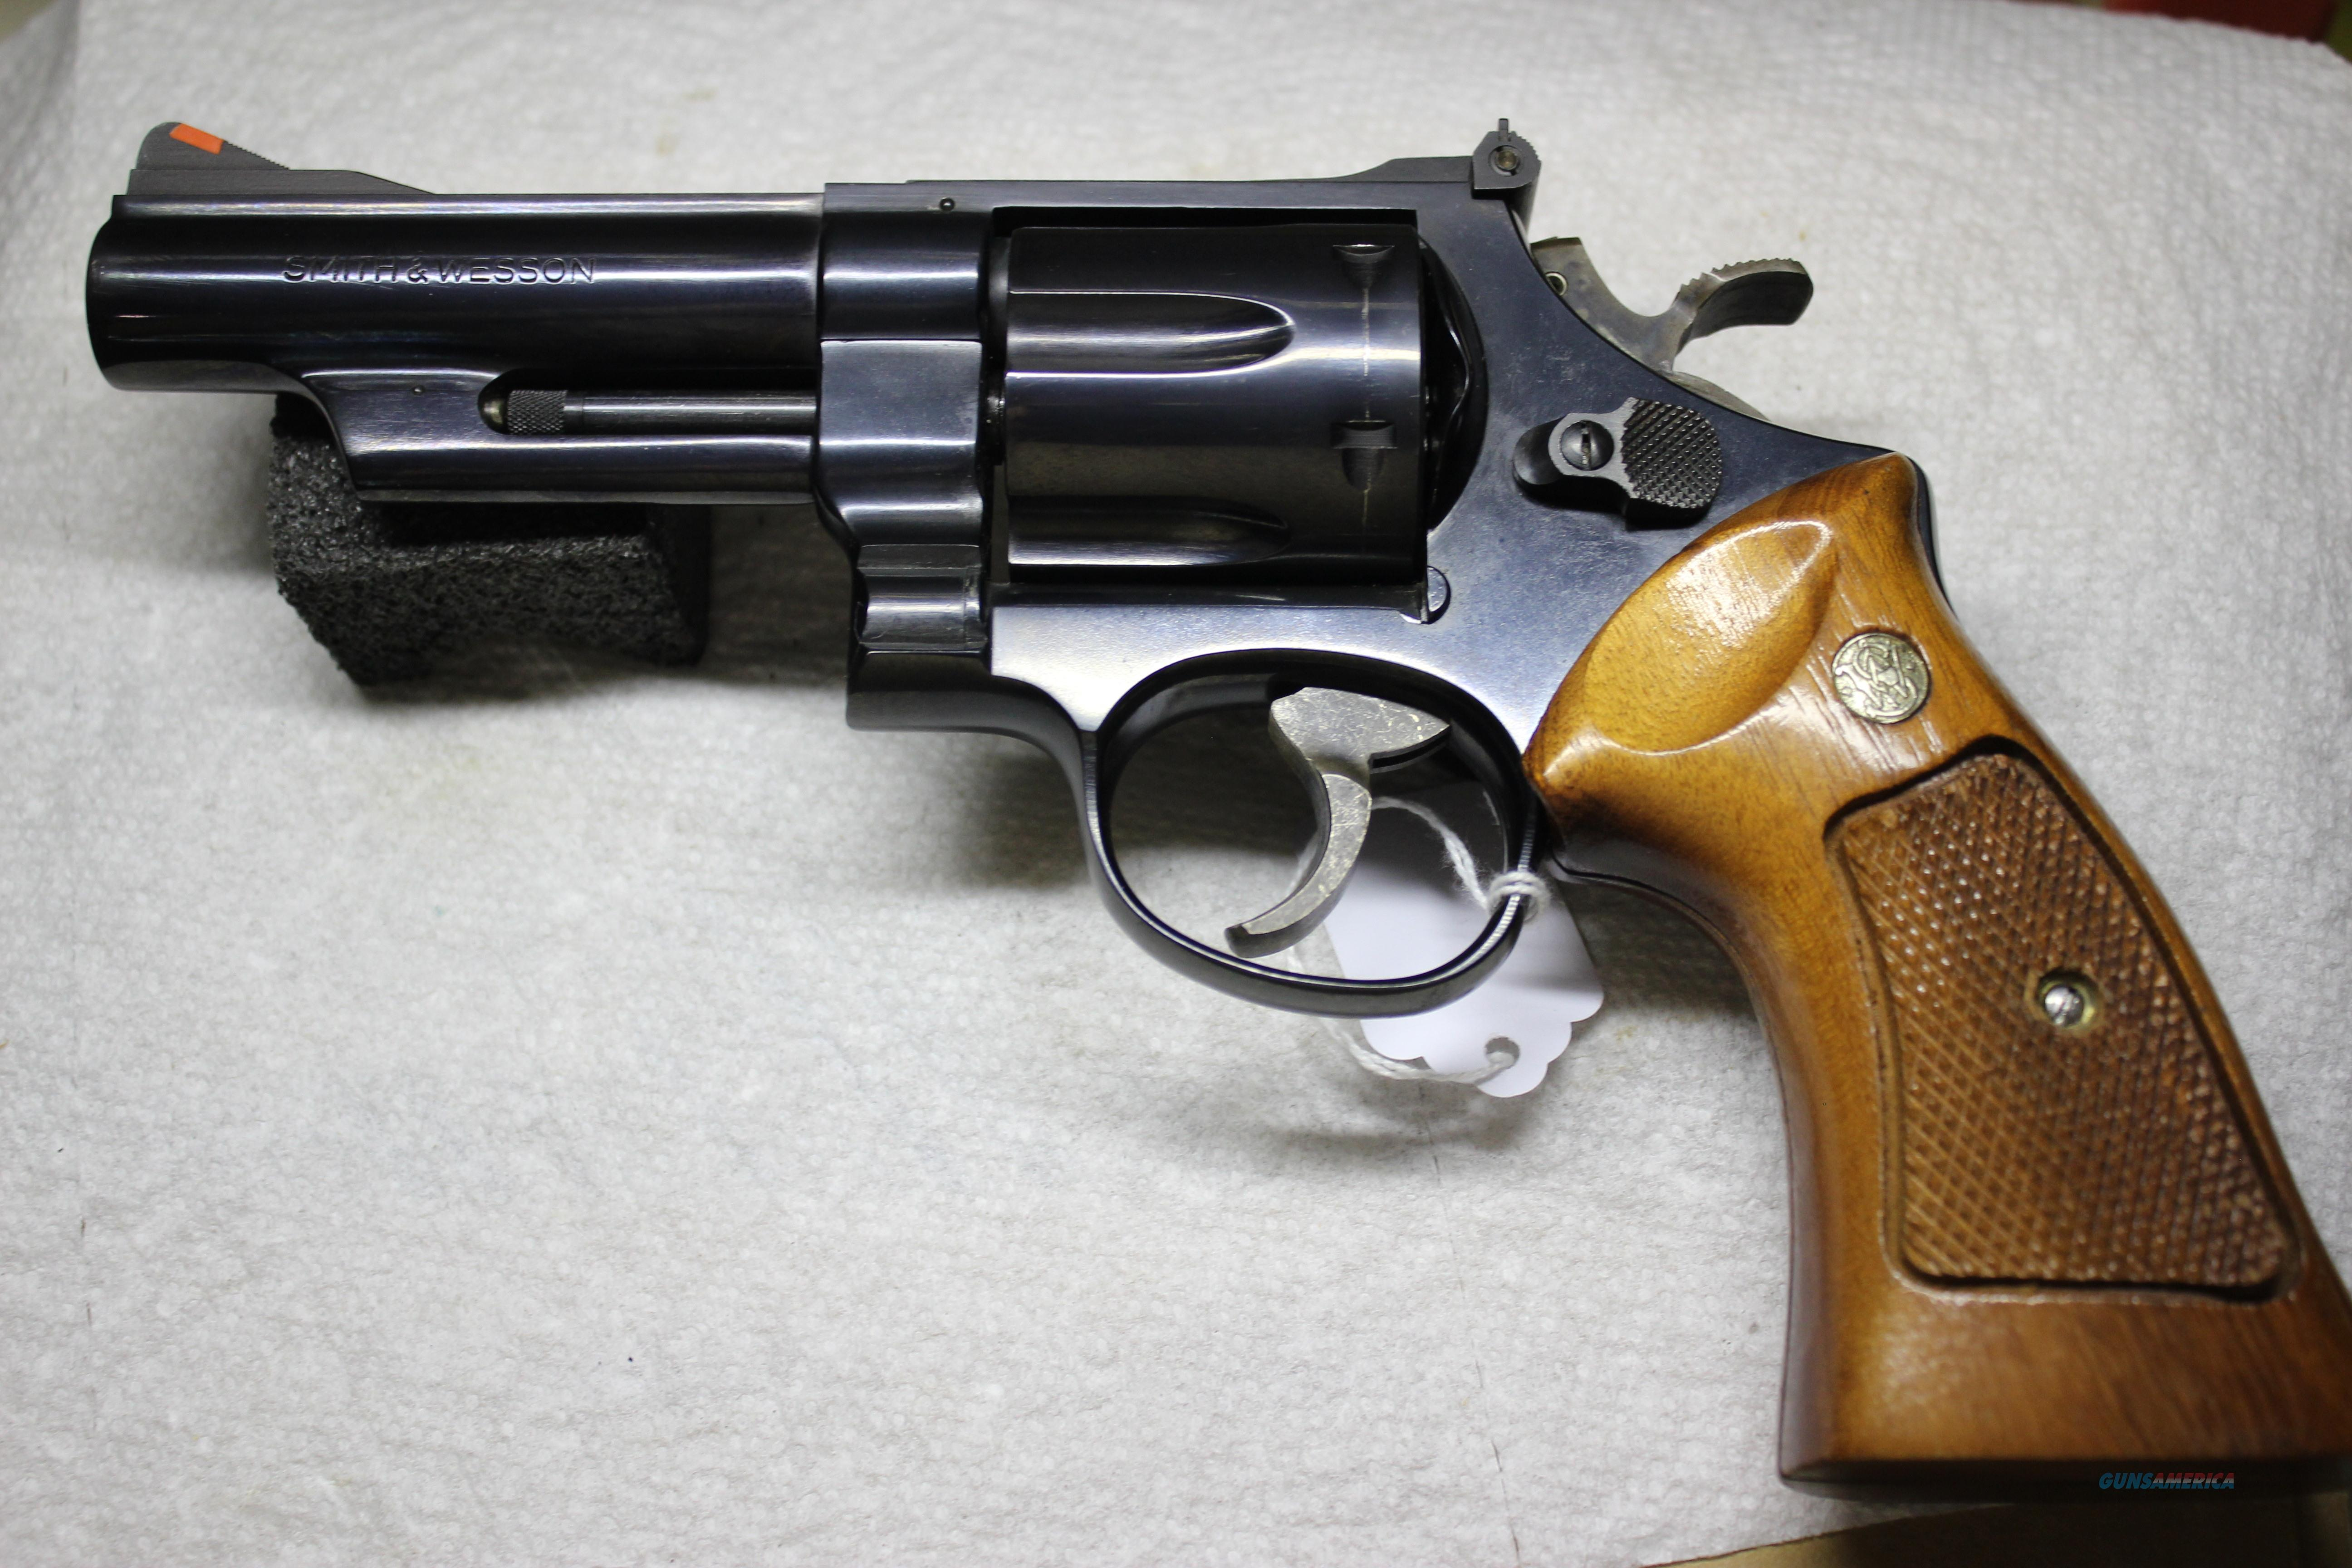 SMITH & WESSON 29-2 for sale